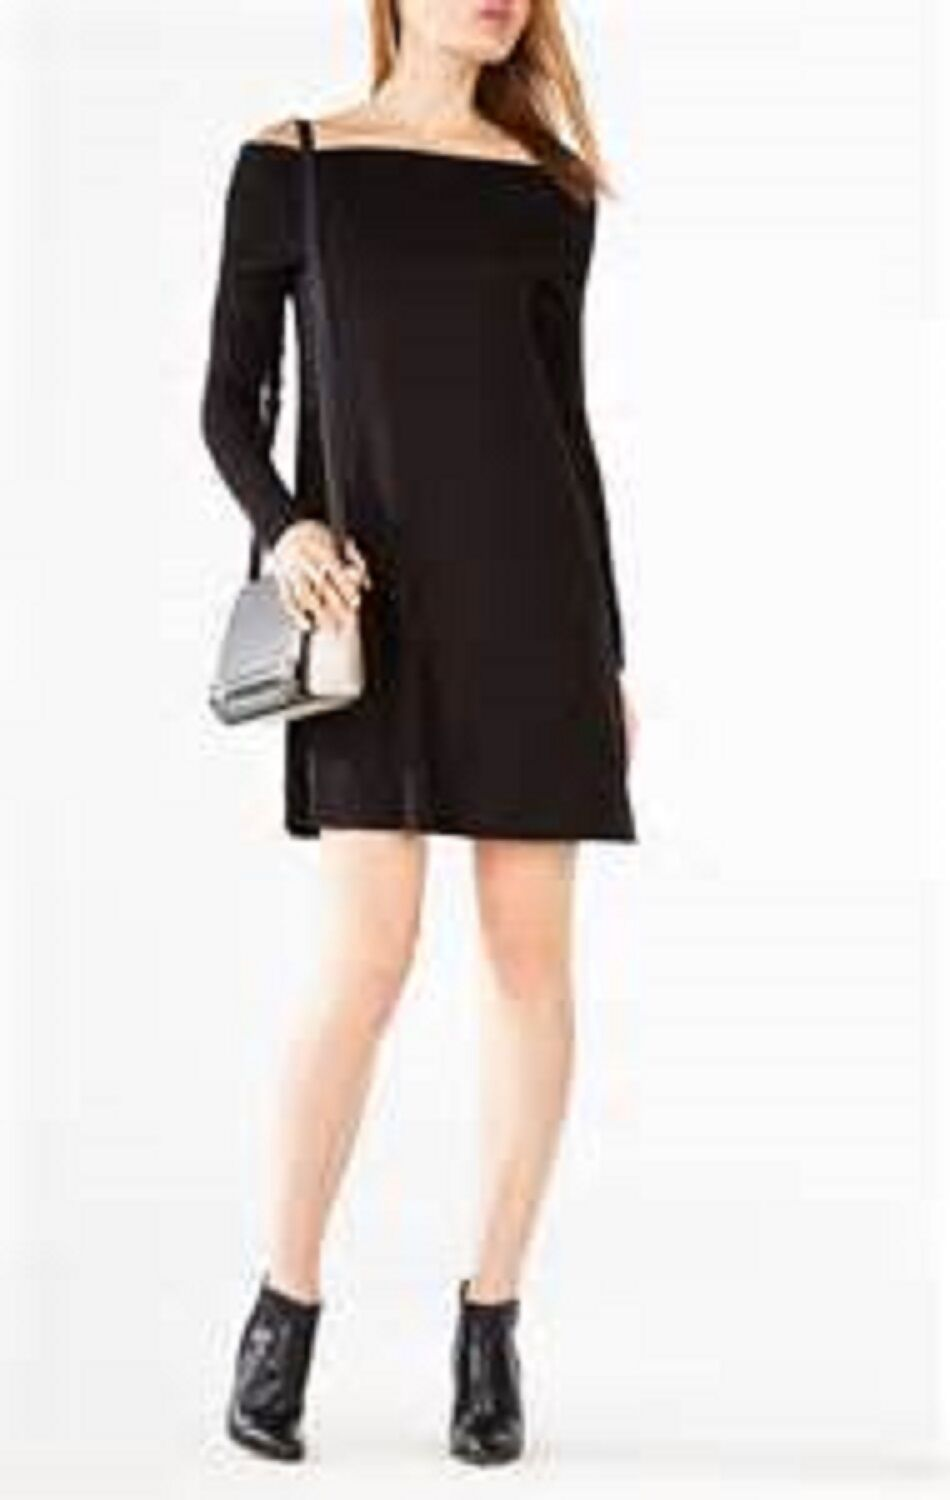 BCBG MAXAZRIA Abril schwarz Off The Shoulder Dress Small  SOLD OUT